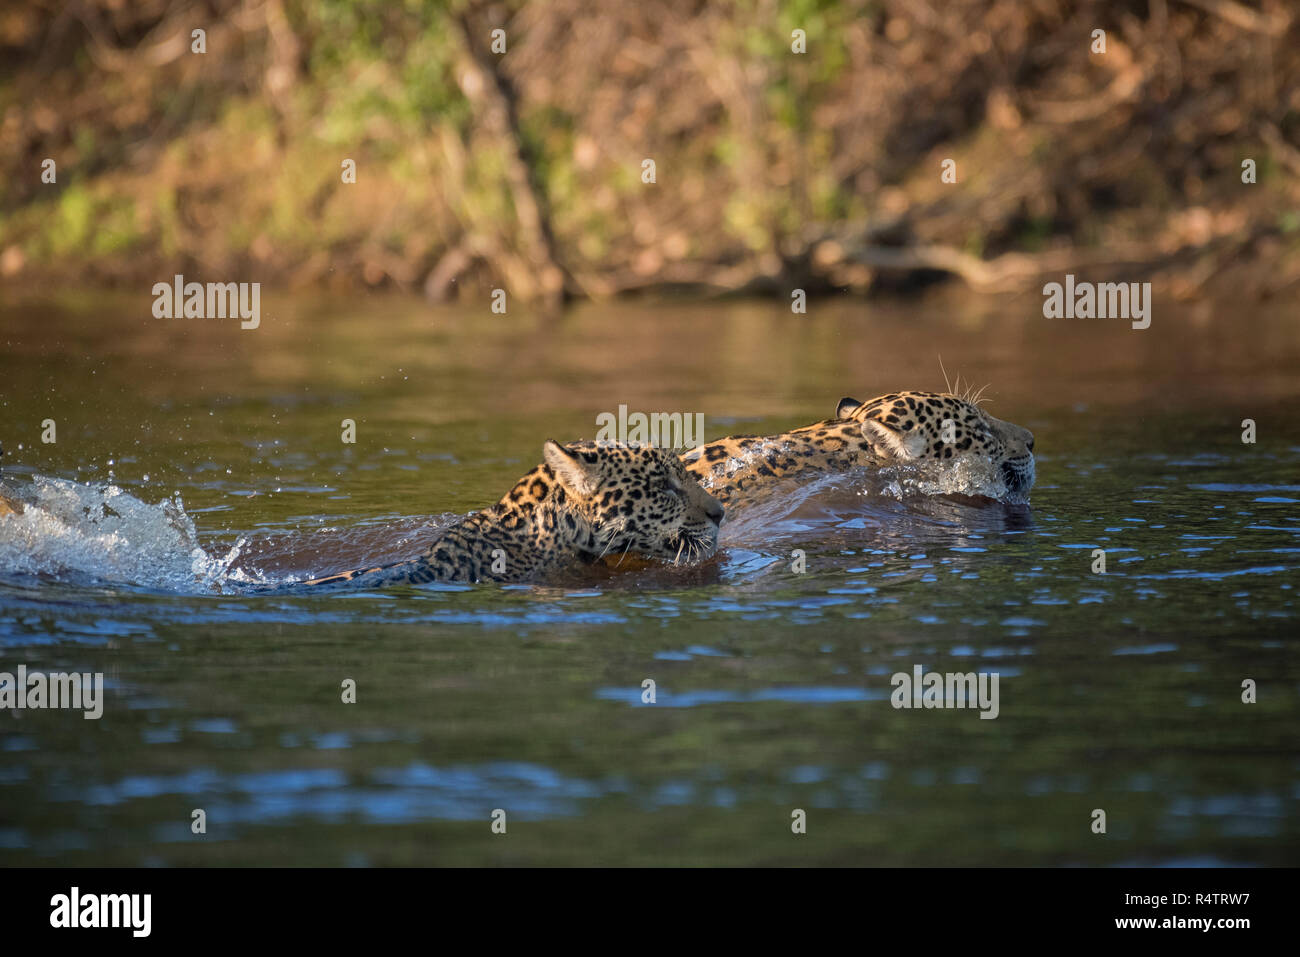 Two Jaguars (Panthera onca) swimming, crossing Rio Negro, Pantanal, Mato Grosso do Sul, Brazil - Stock Image